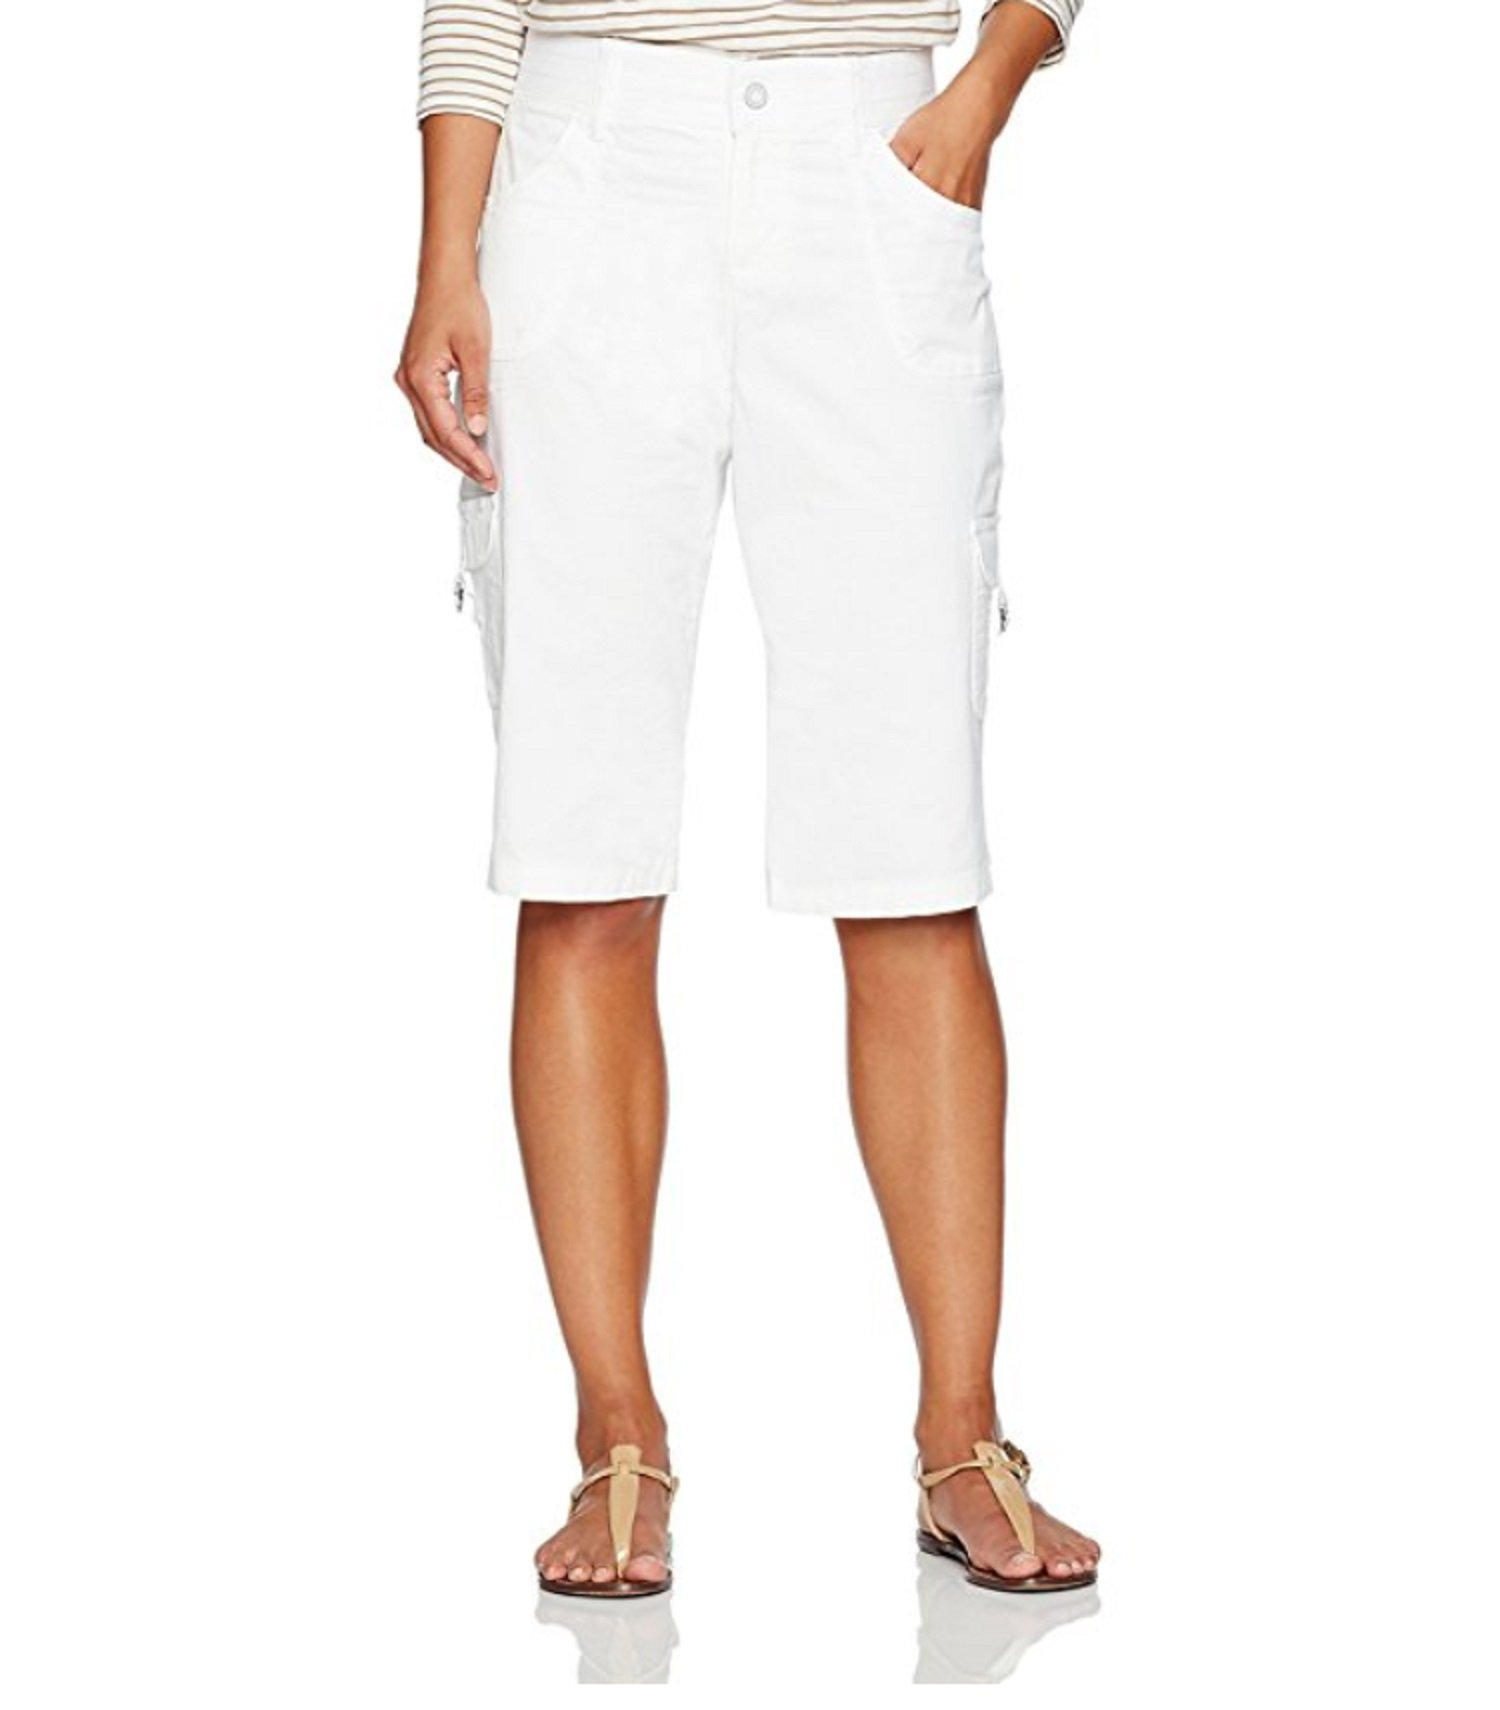 Platinum Label by Lee Petite Relaxed FIT Flexible Comfort Waist Cargo Skimmer Pants (White, 10P)